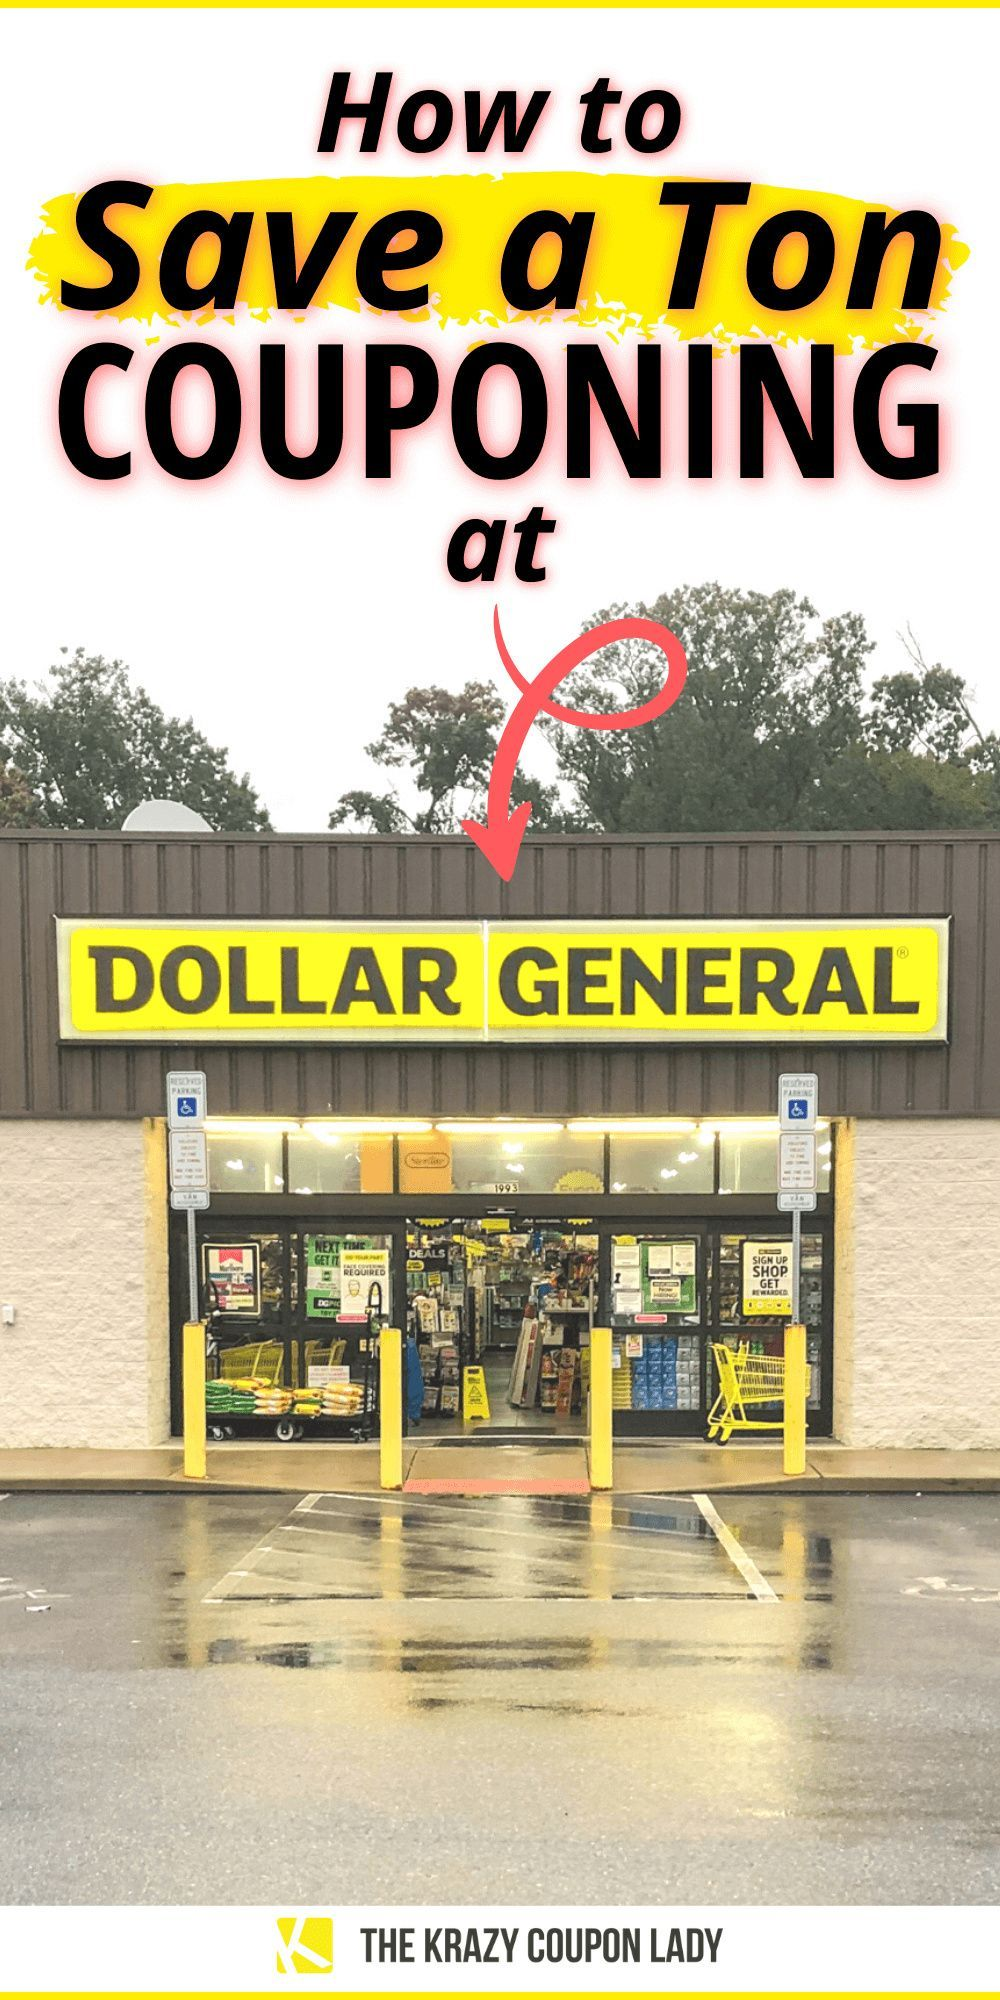 How To Coupon At Dollar General Dollar General Digital Coupons Dollar General Couponing Couponing For Beginners